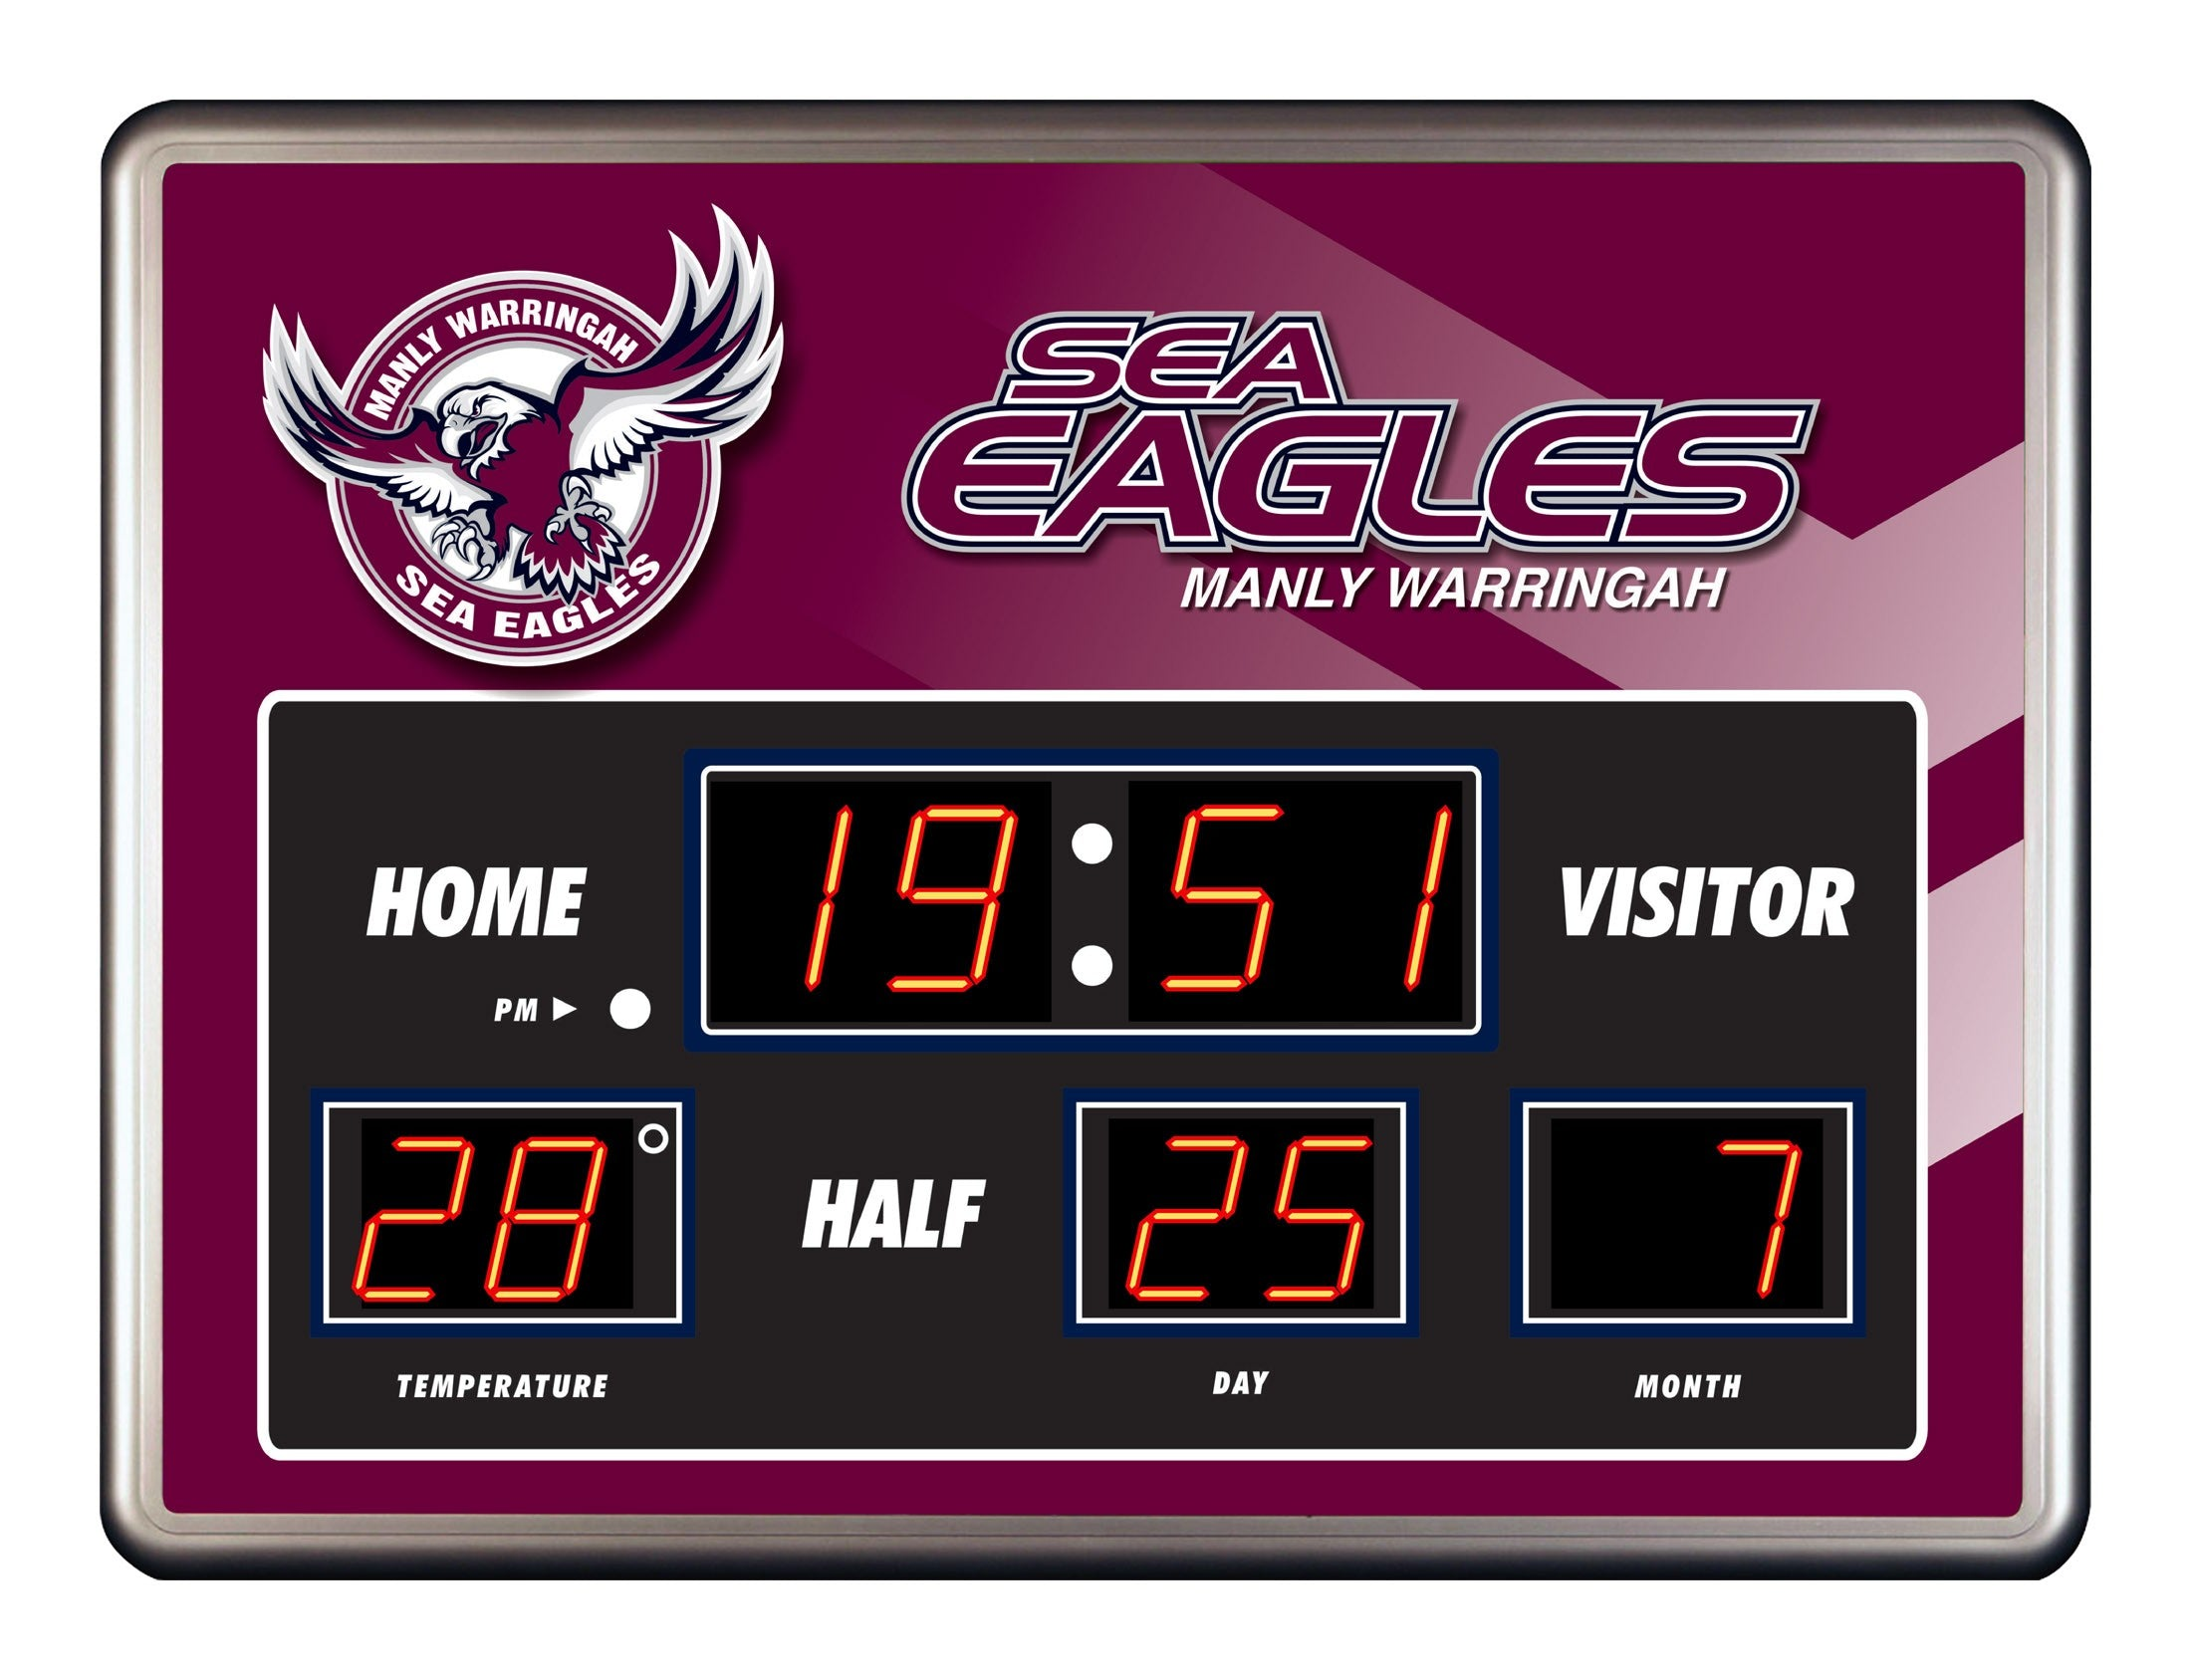 Sea Eagles Scoreboard Clock